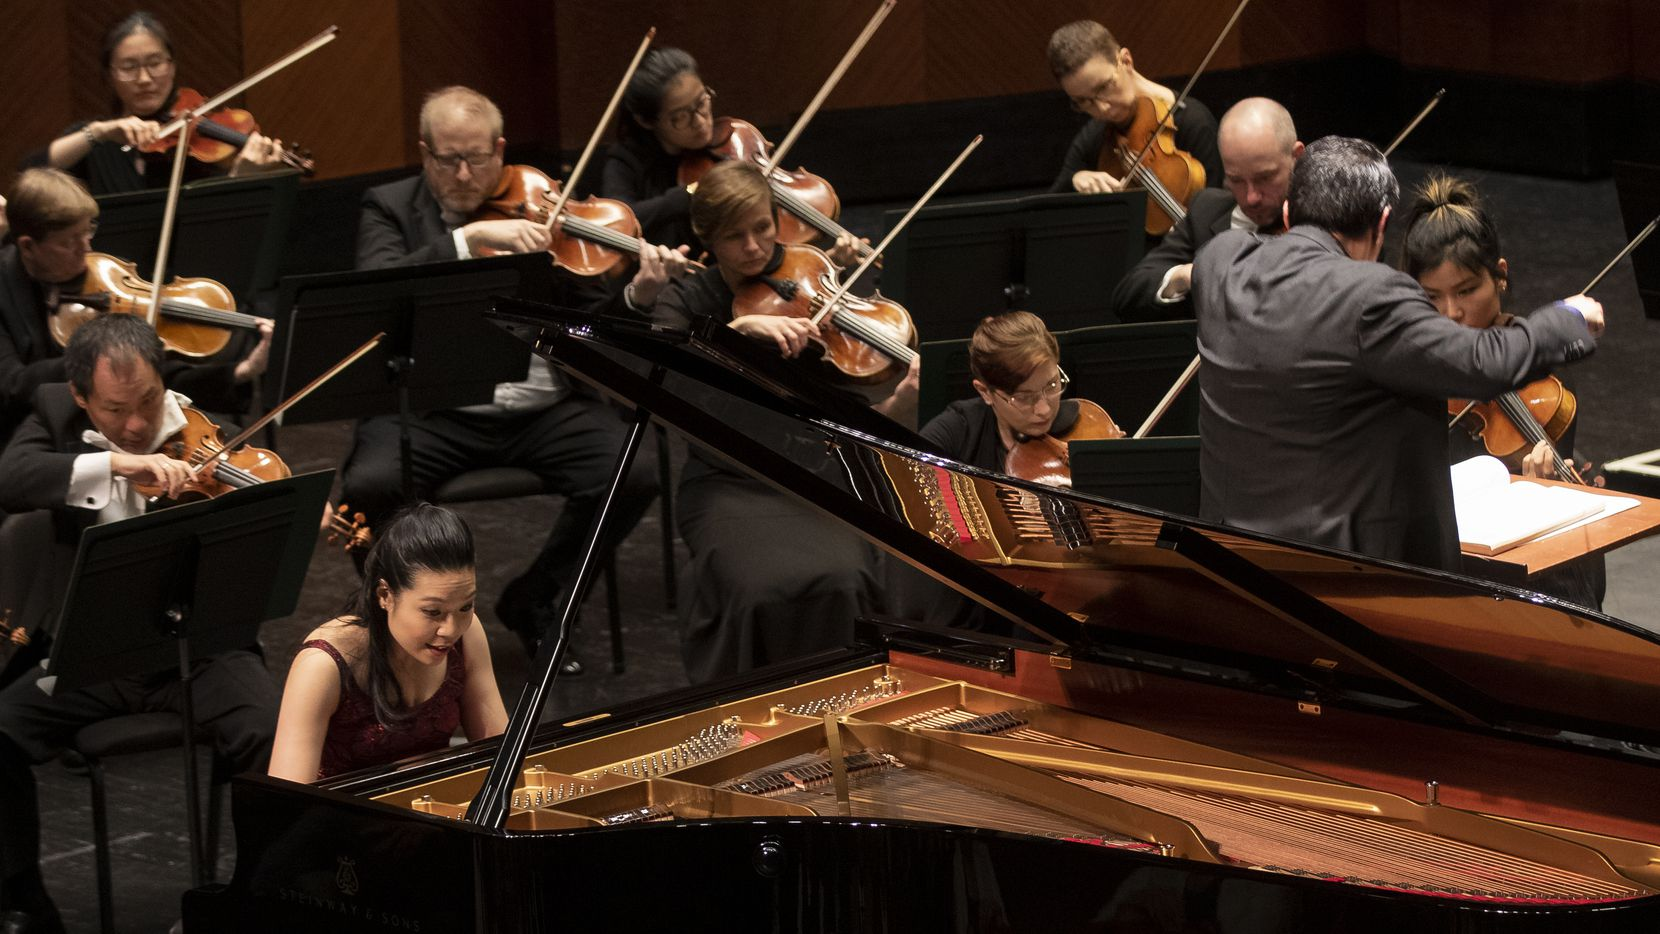 Pianist Joyce Yang plays while conductor Miguel Harth-Beyodya leads the Fort Worth Symphony Orchestra in Beethoven's Concerto No. 1 in C Major, op. 15 during the Cliburn concert series at Bass Performance Hall on Jan. 4, 2020 in Fort Worth.